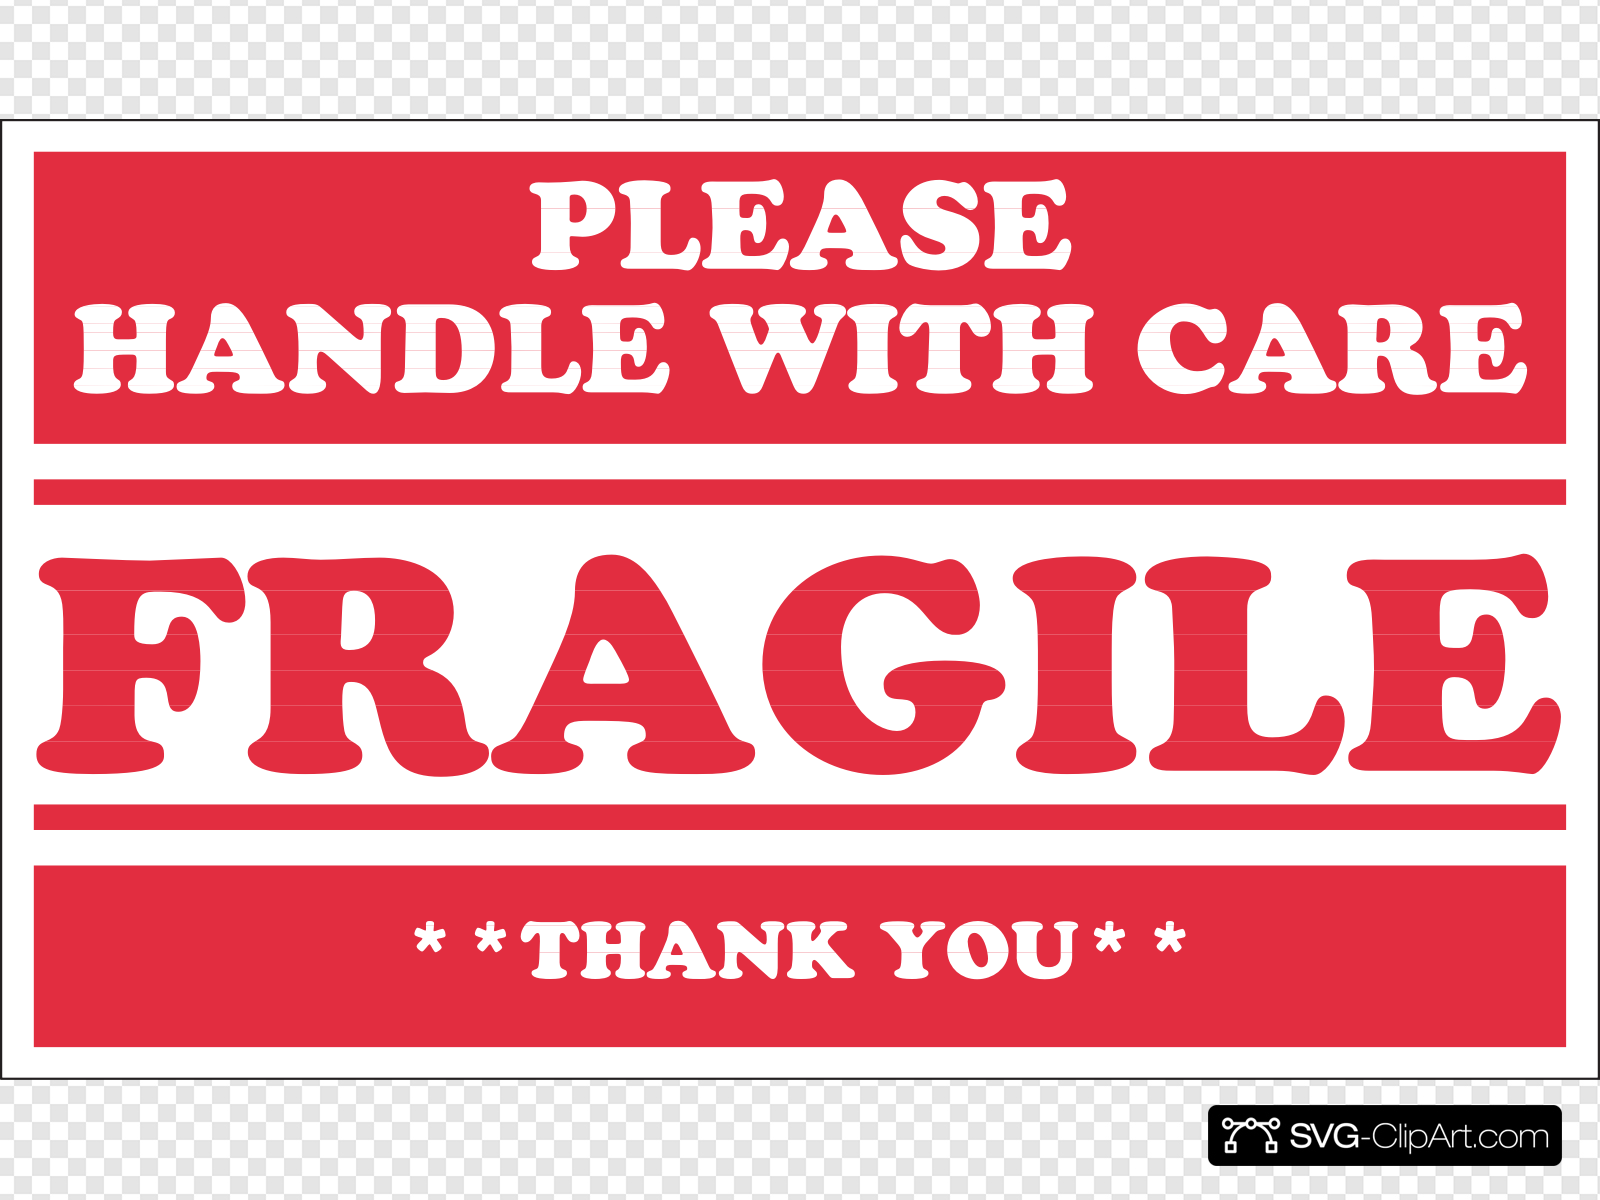 Fragile Handle With Care Clip art, Icon and SVG.